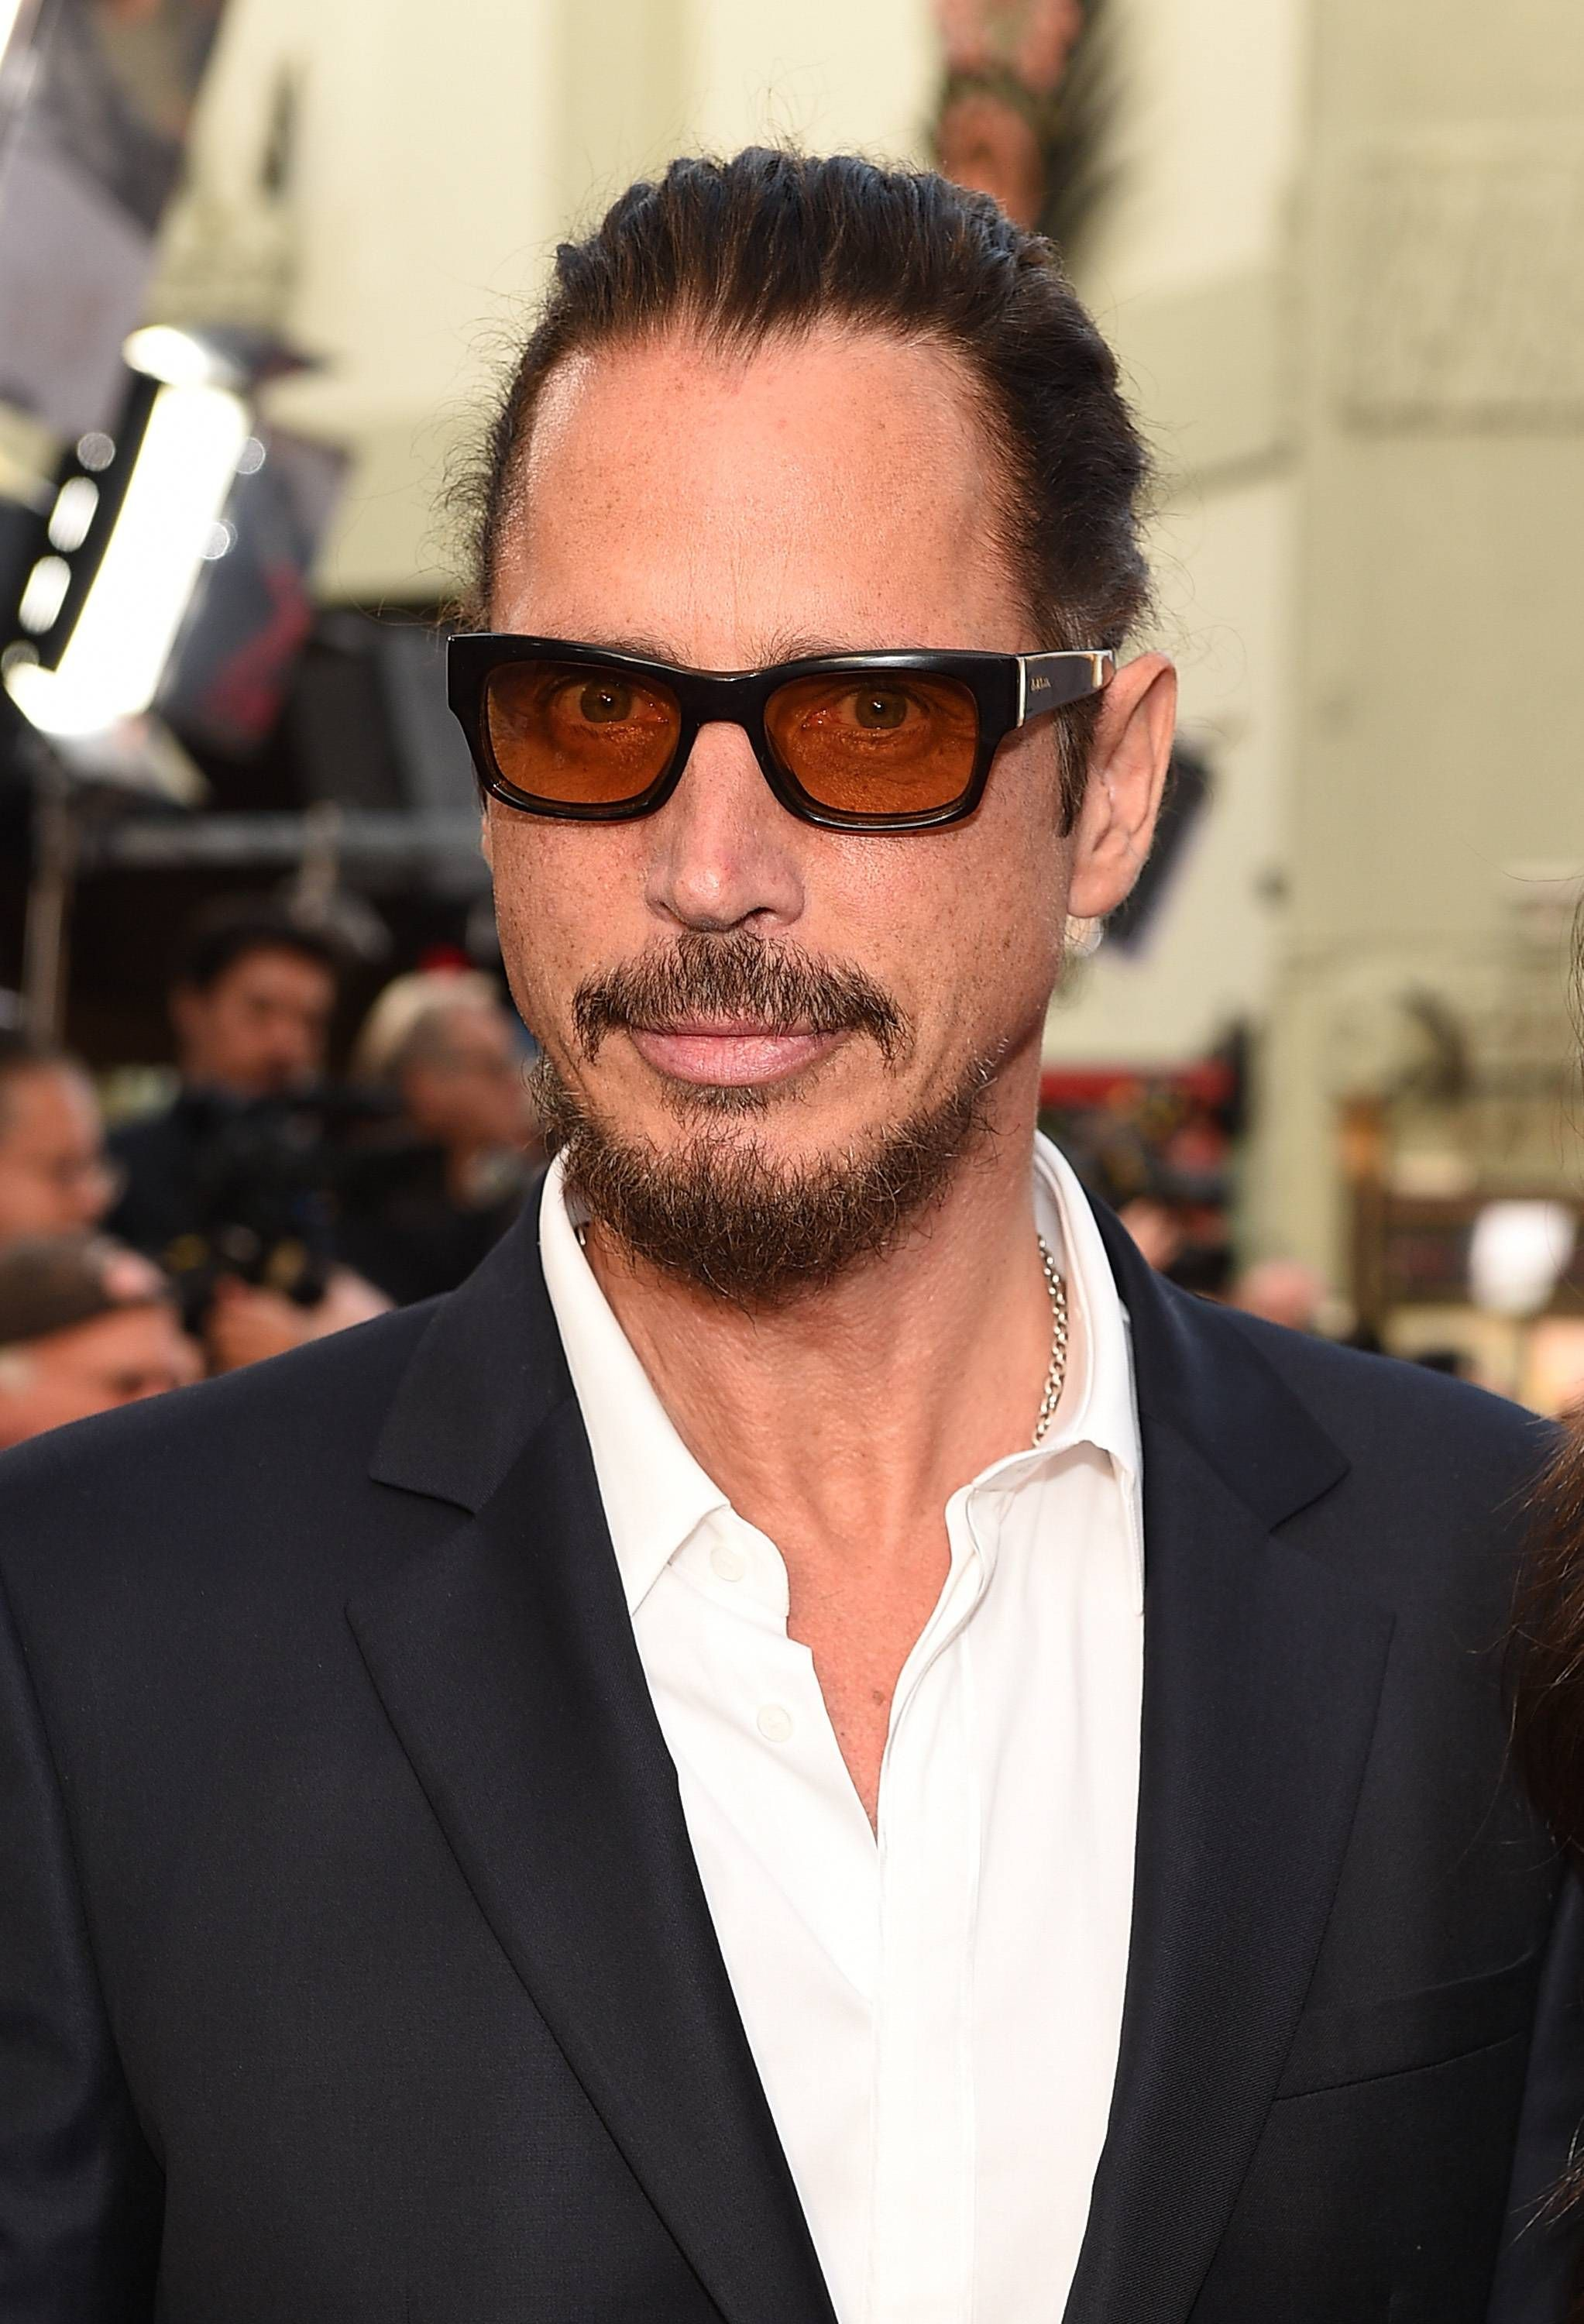 What Is Ativan? Chris Cornell's Family Thinks Suicide May Be Drug-Related